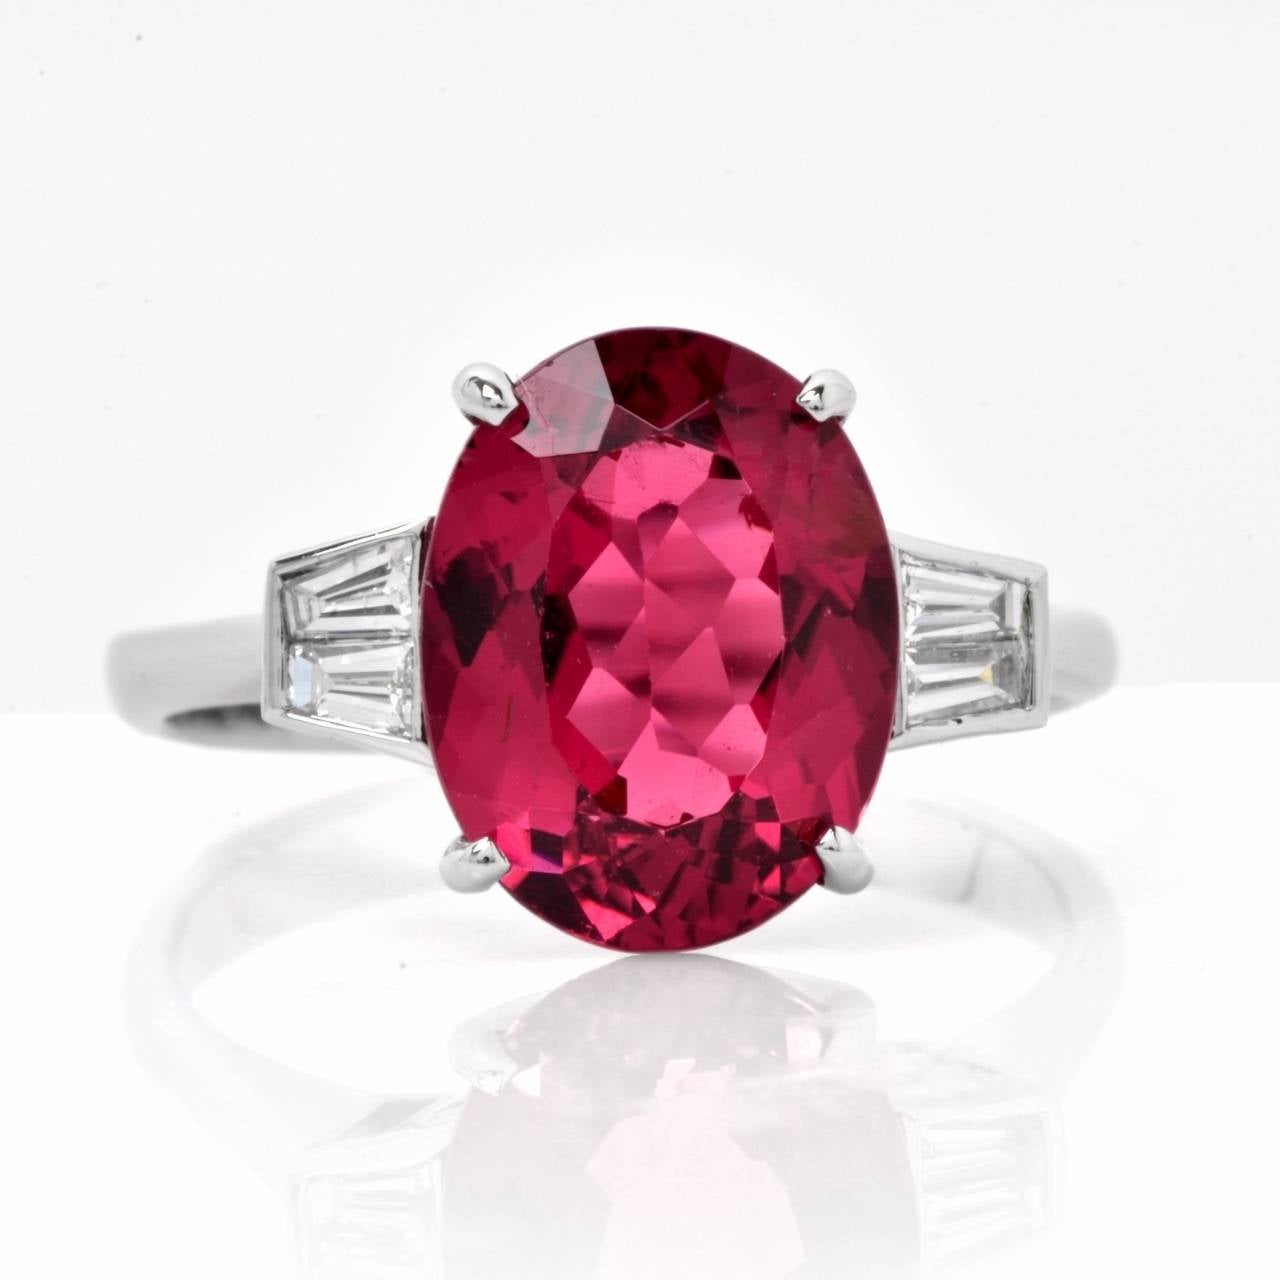 This vivacious diamond and pink tourmaline estate ring is crafted in solid 18K white gold, weighs approx. 4.00 grams  and measures 10 mm wide and 7 mm high. Designed with simplicity and timeless elegance, this ring exposes an oval-faceted  3.39 ct